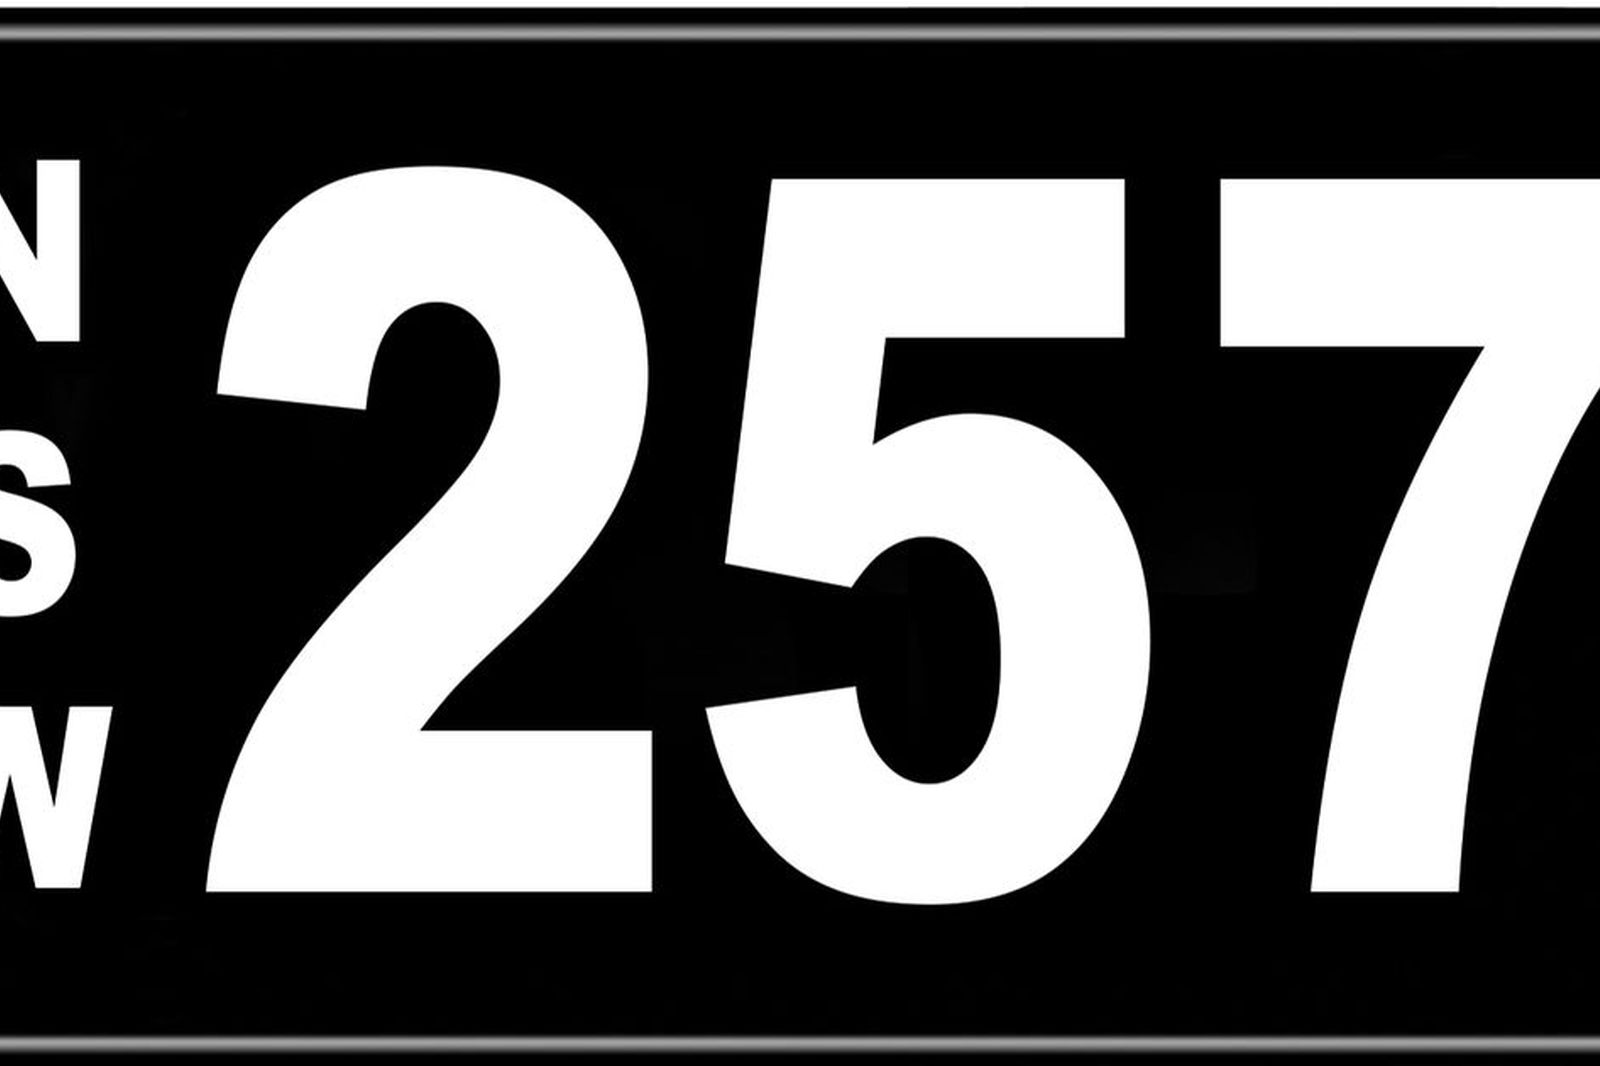 Number Plates - NSW Numerical Number Plates '257'